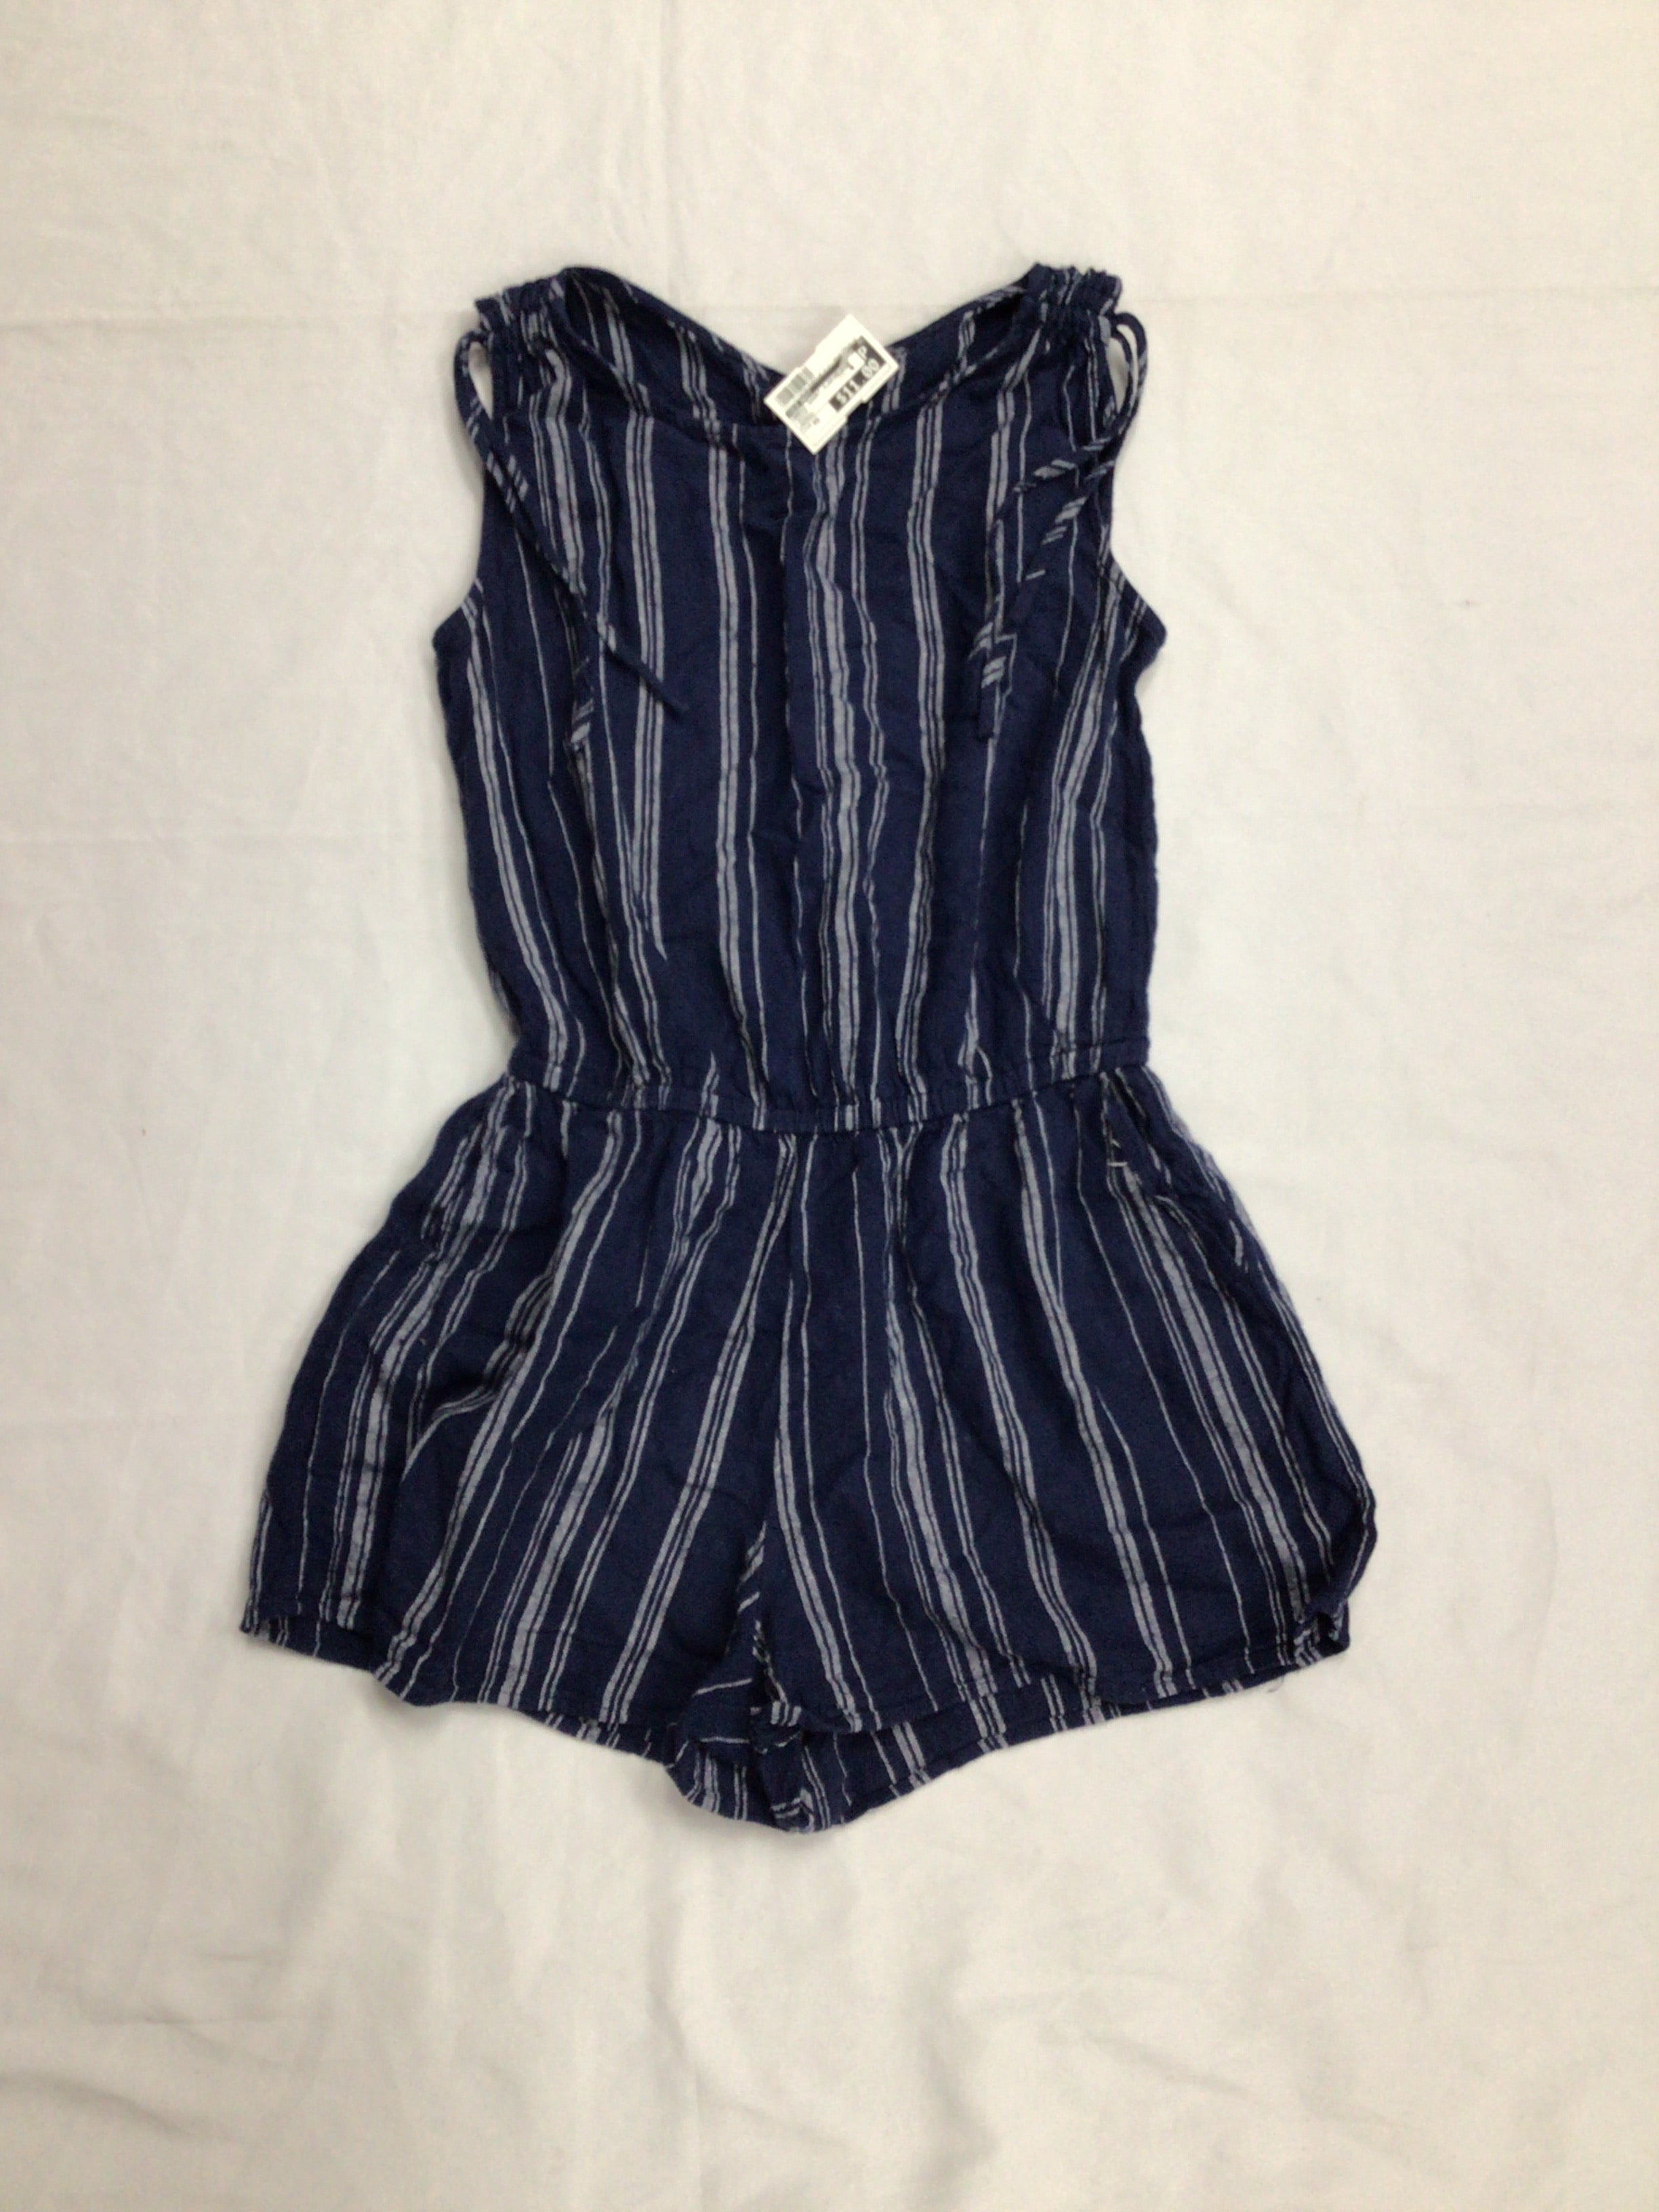 Primary Photo - BRAND: OLD NAVY <BR>STYLE: DRESS SHORT SLEEVELESS <BR>COLOR: DENIM <BR>SIZE: XS <BR>OTHER INFO: ROMPER <BR>SKU: 111-111279-6264